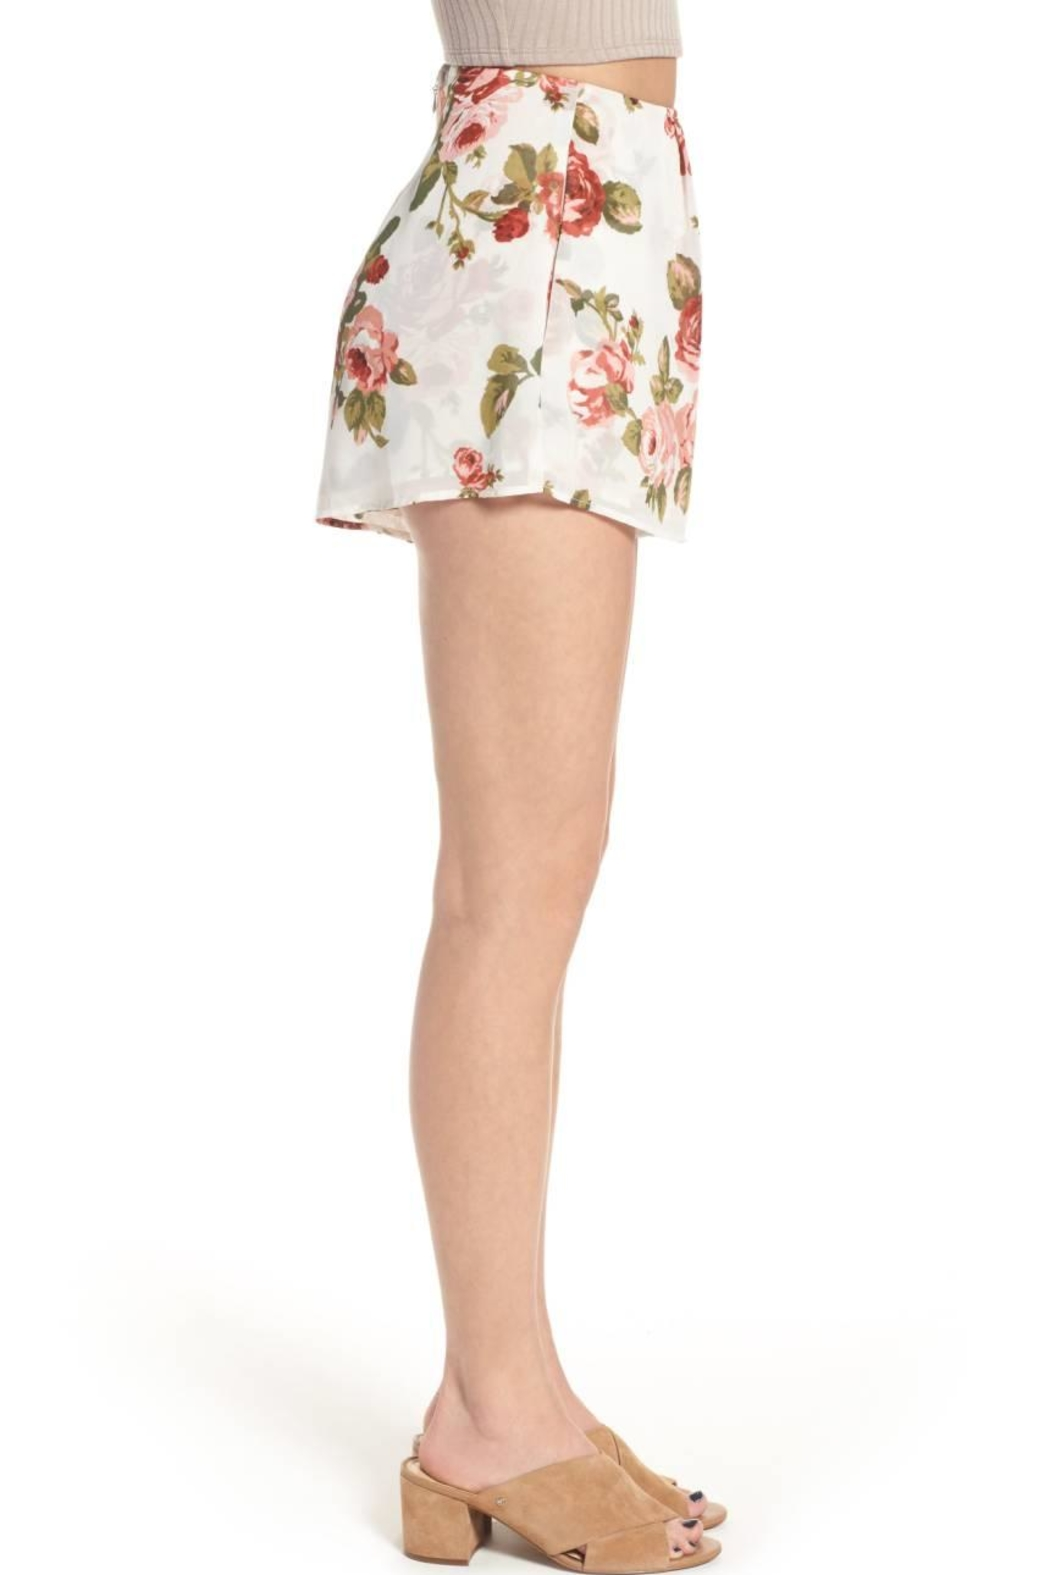 Show Me Your Mumu White Floral Shorts - Side Cropped Image